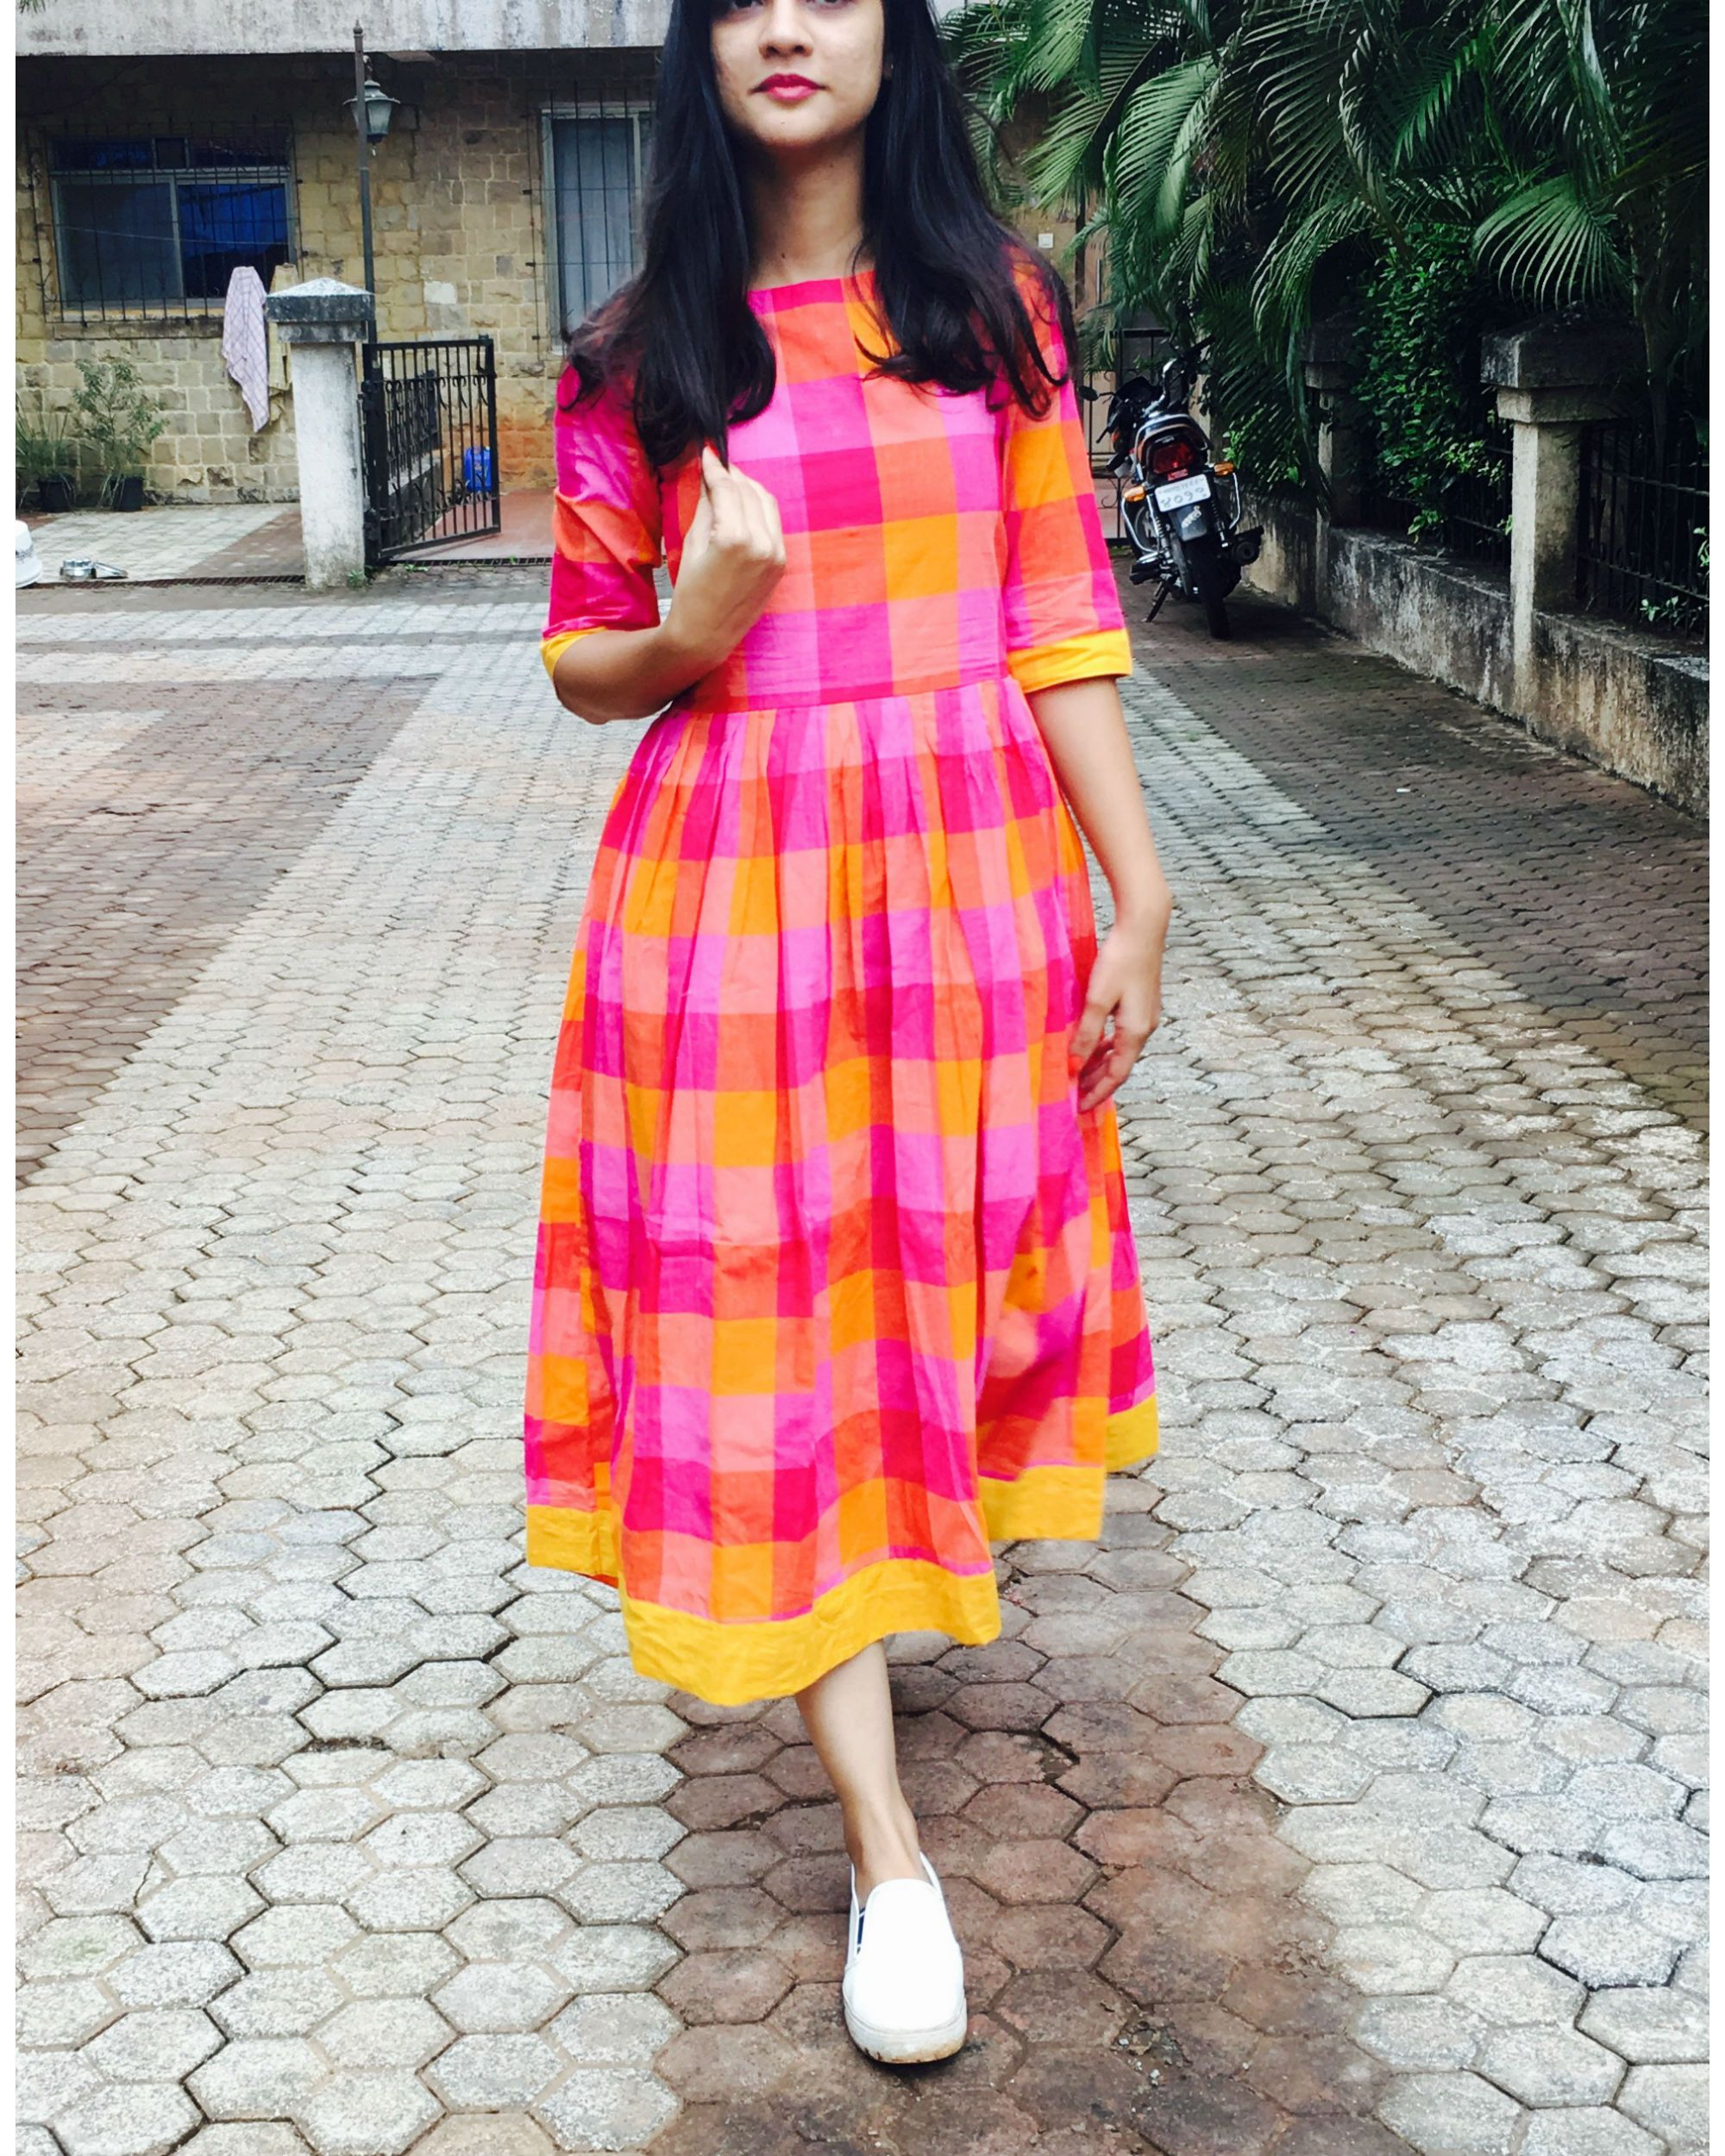 Shop Pink And Yellow Checks Cotton Dress The Secret Label Casual Dress Outfits Casual Frocks Trendy Dresses [ 2500 x 2000 Pixel ]